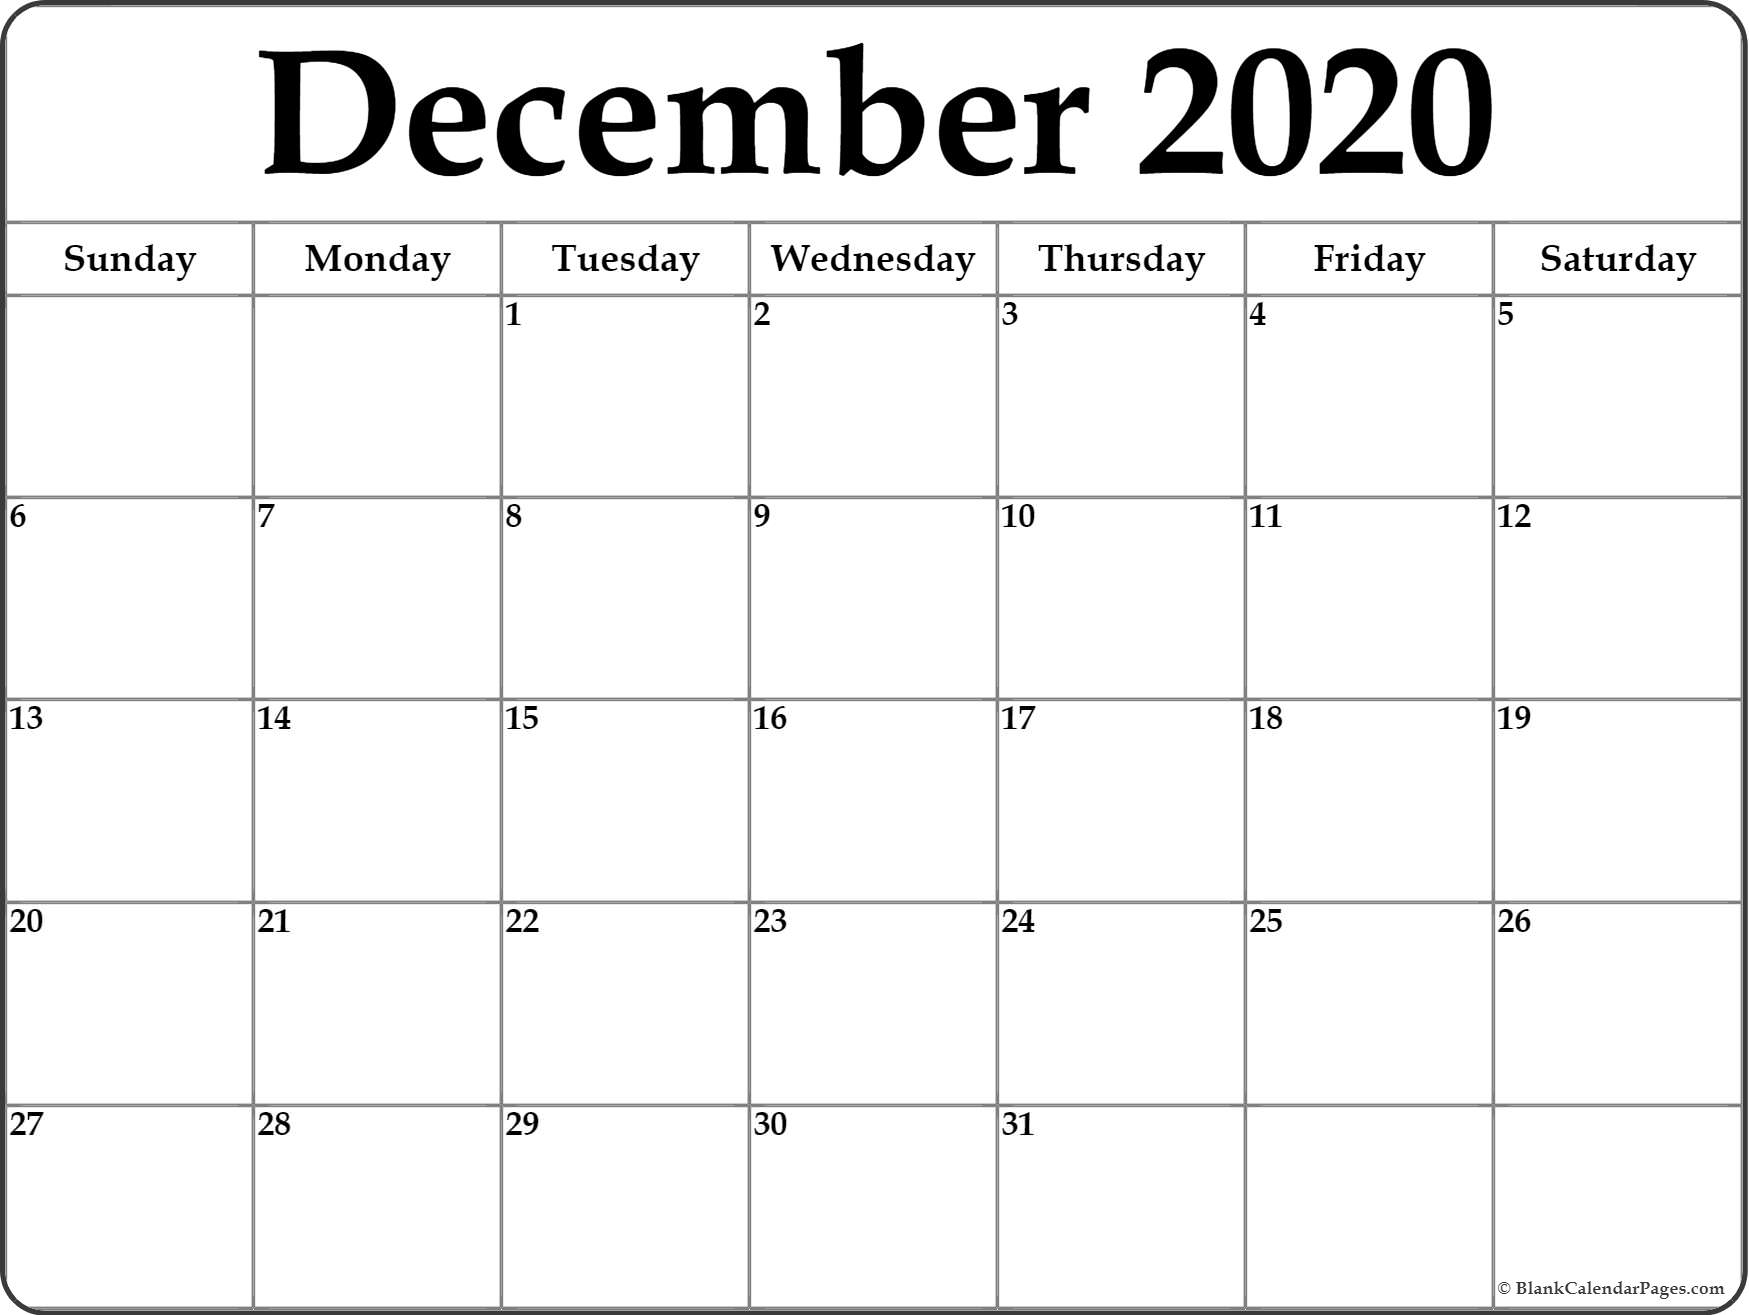 Blank Calendar December 2020  Bolan.horizonconsulting.co regarding Printable December Calender 2020